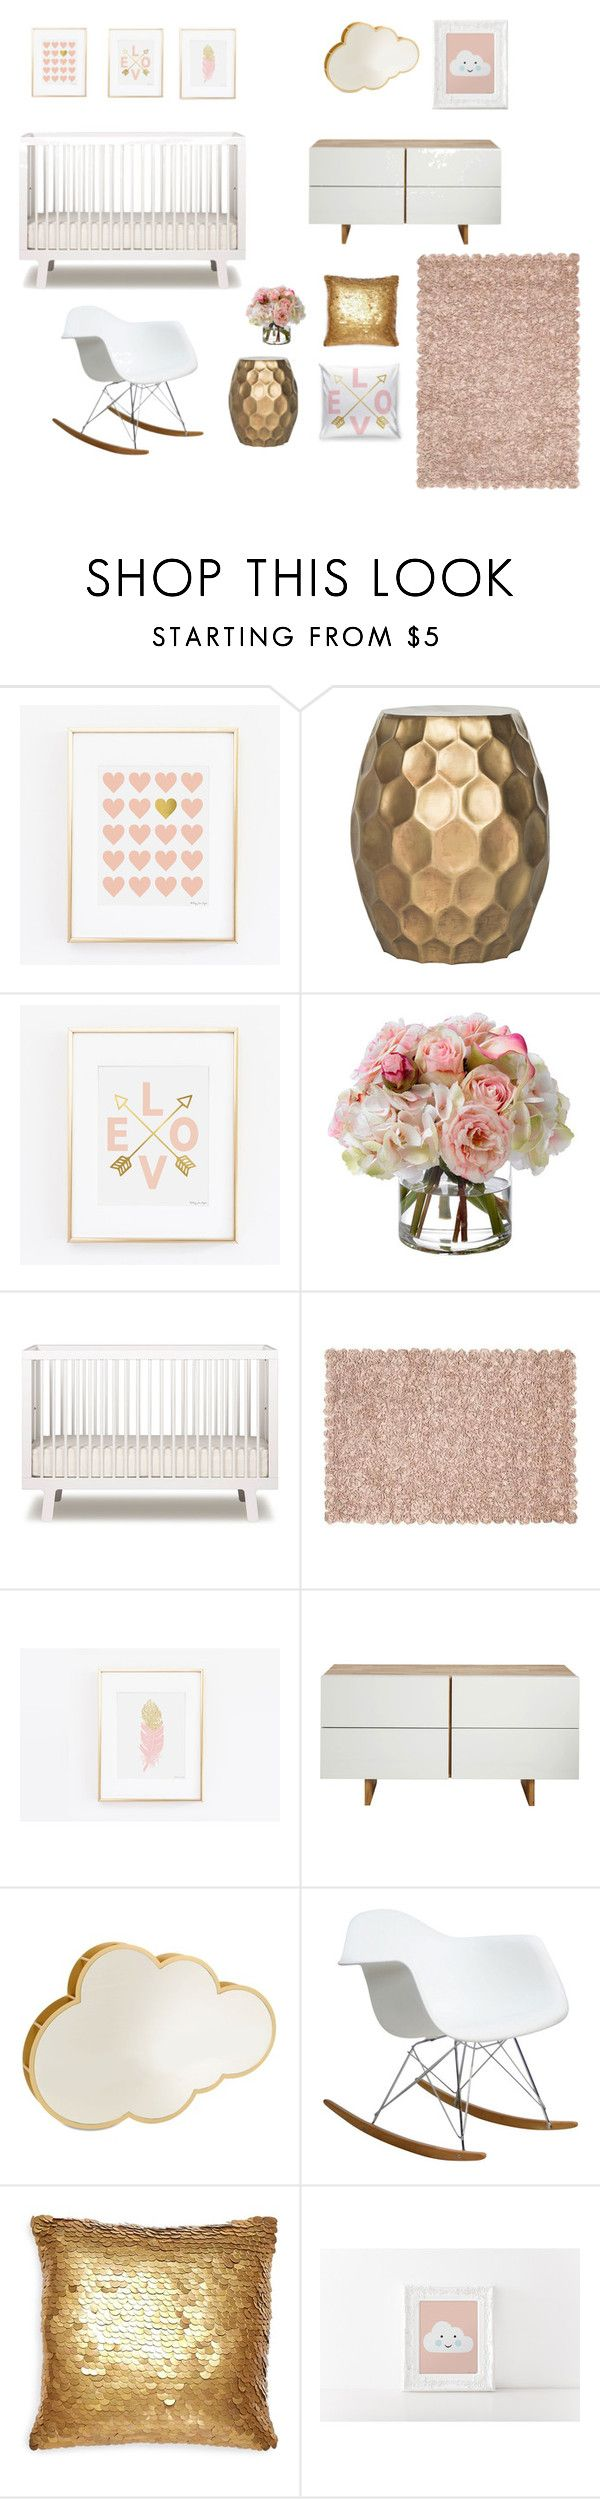 """Pink and Gold Baby Nursery"" by pennyjanedesigns on Polyvore featuring interior, interiors, interior design, home, home decor, interior decorating, Safavieh, Diane James, Oeuf and MASH Studios"